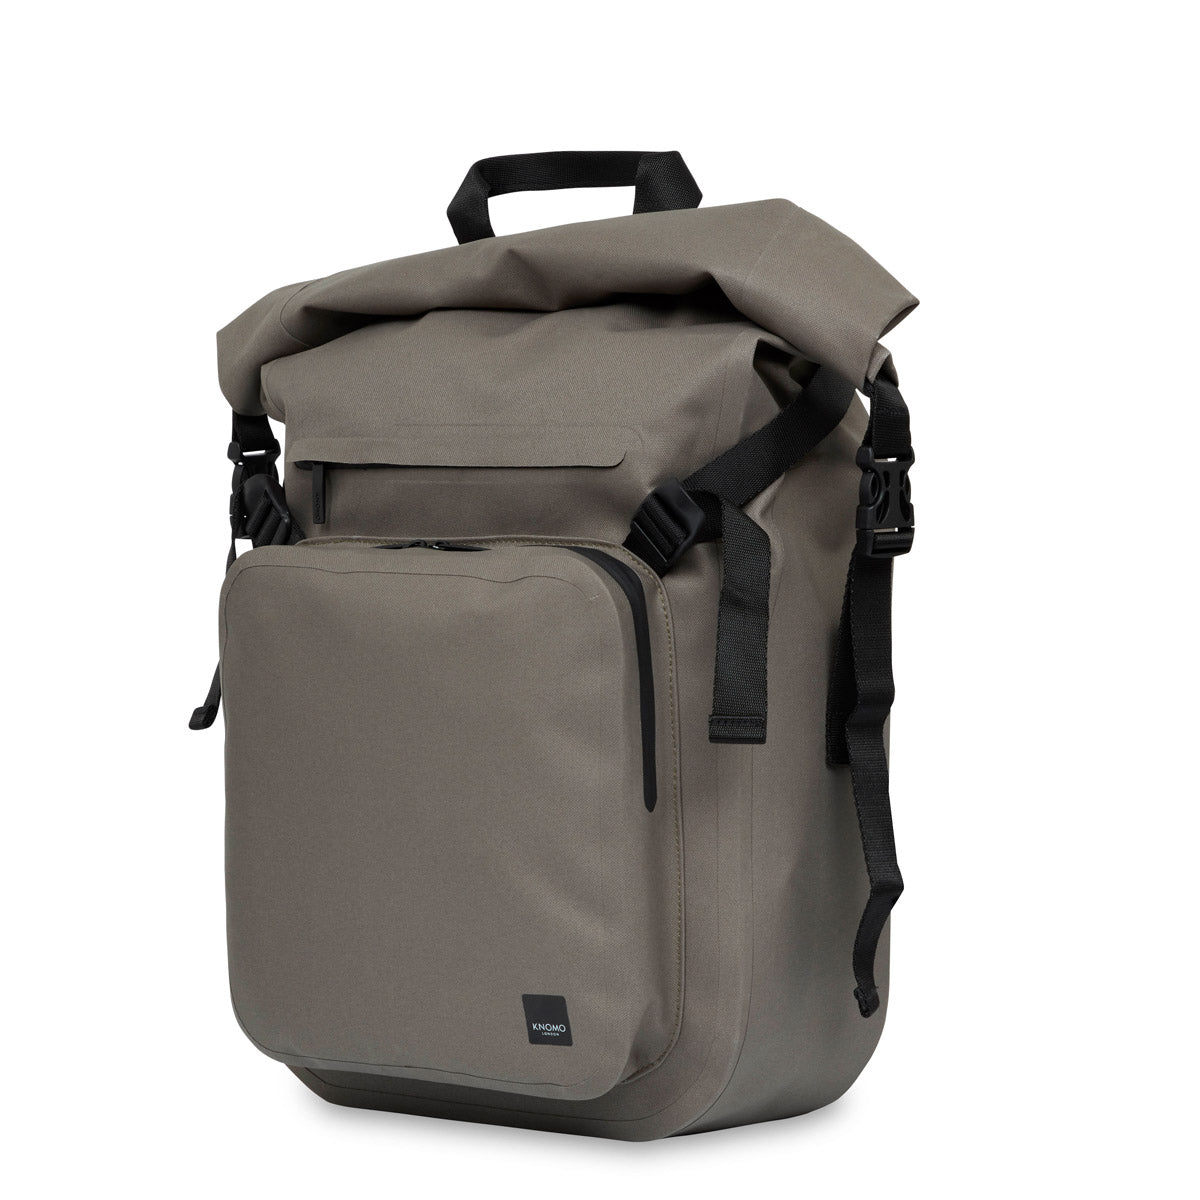 "Hamilton Water Resistant Roll-Top Laptop Backpack - 14"" -  Khaki 